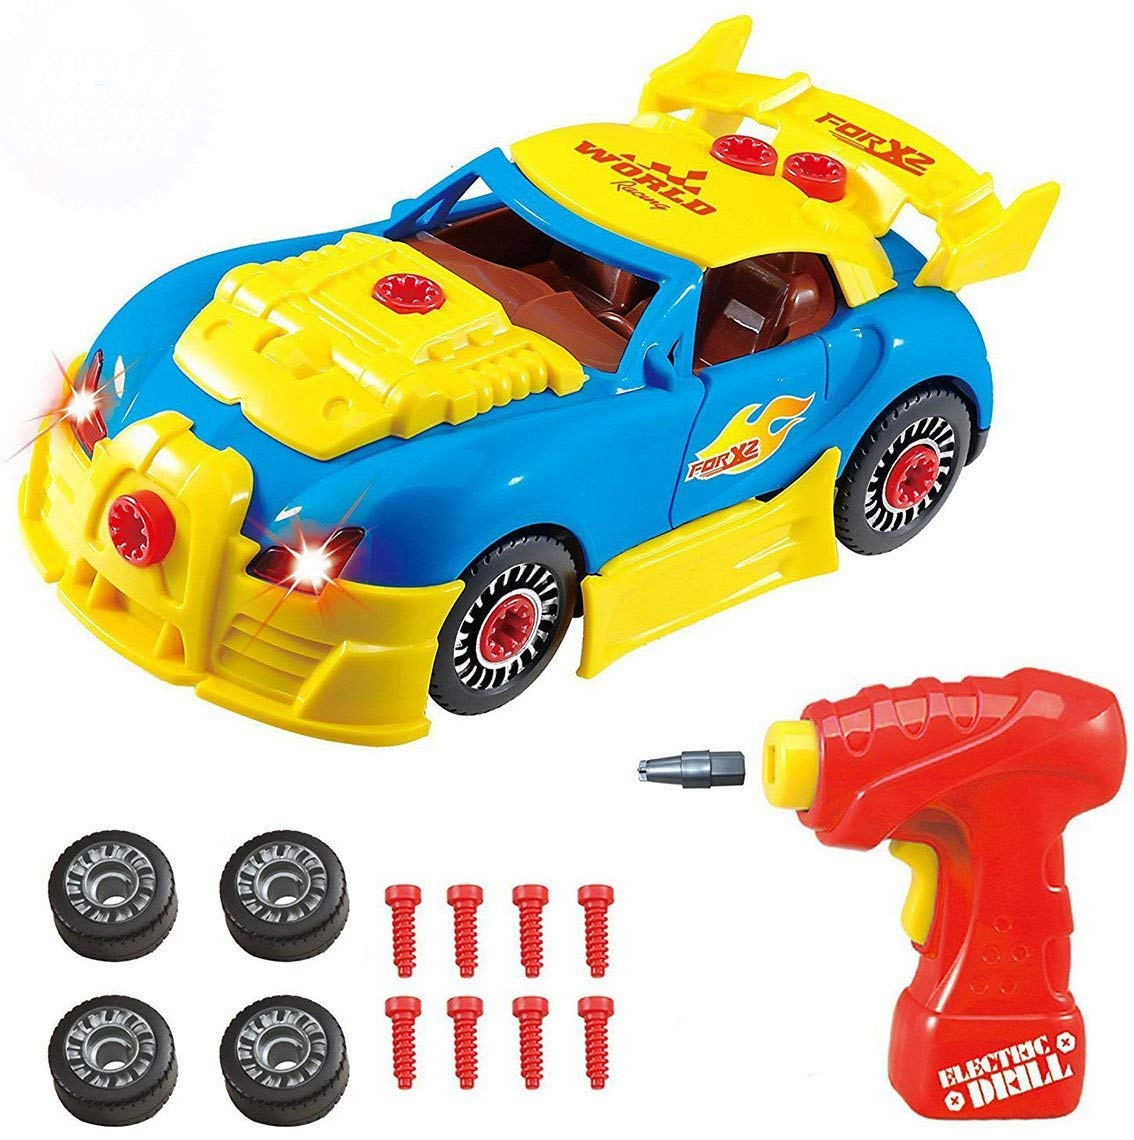 Toys for 2-3 Year Old Boys, DIMY Toys Cars Take Apart Racing Car Toys Constructions Set Educational Toy Gifts for 3-6 Year Old Boys Mothers Day Gifts DMTC01